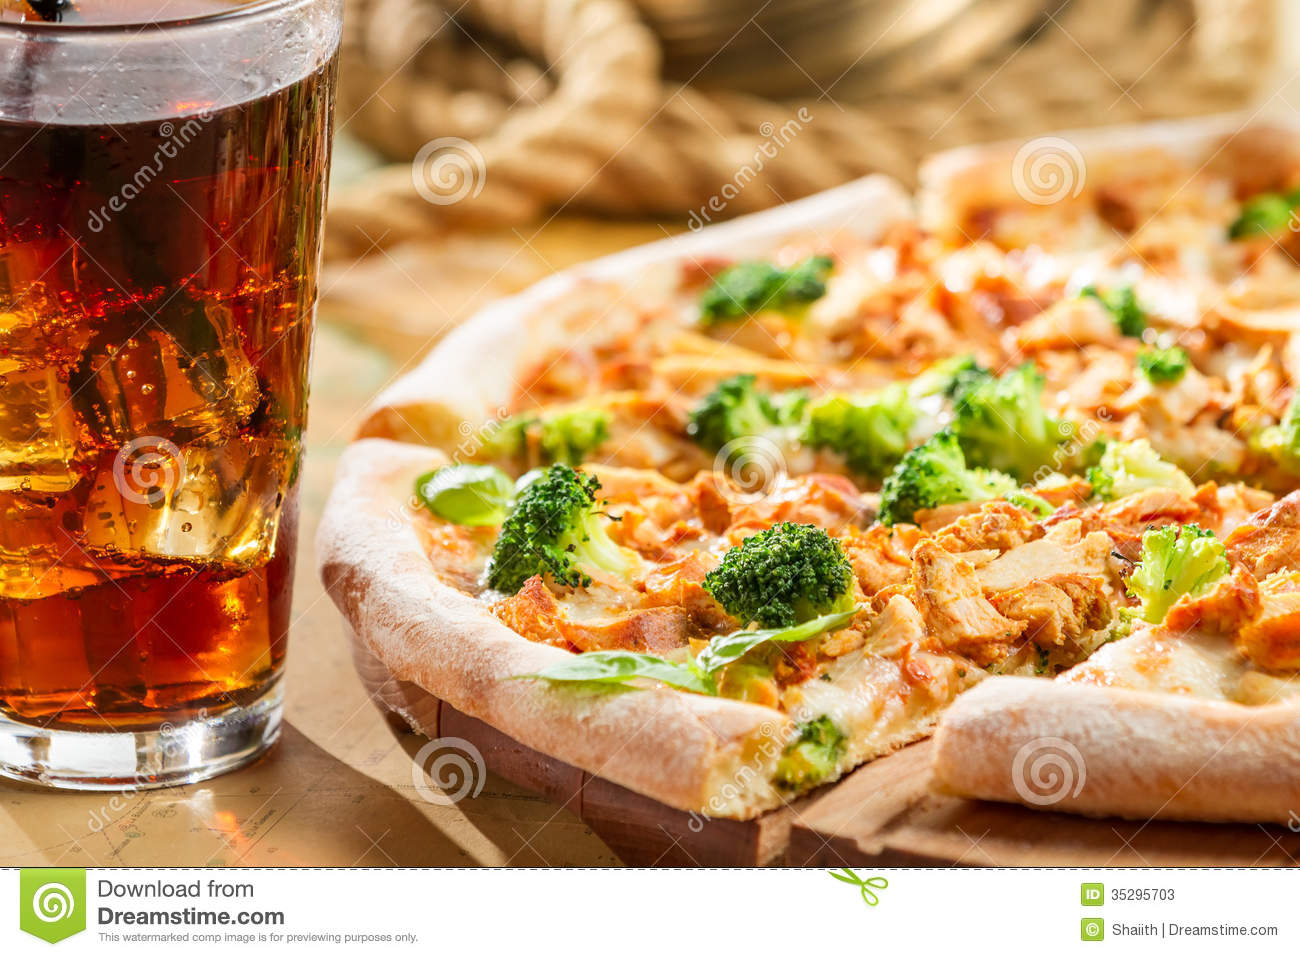 Fresh Pizza With Broccoli And Chicken Served With Cold